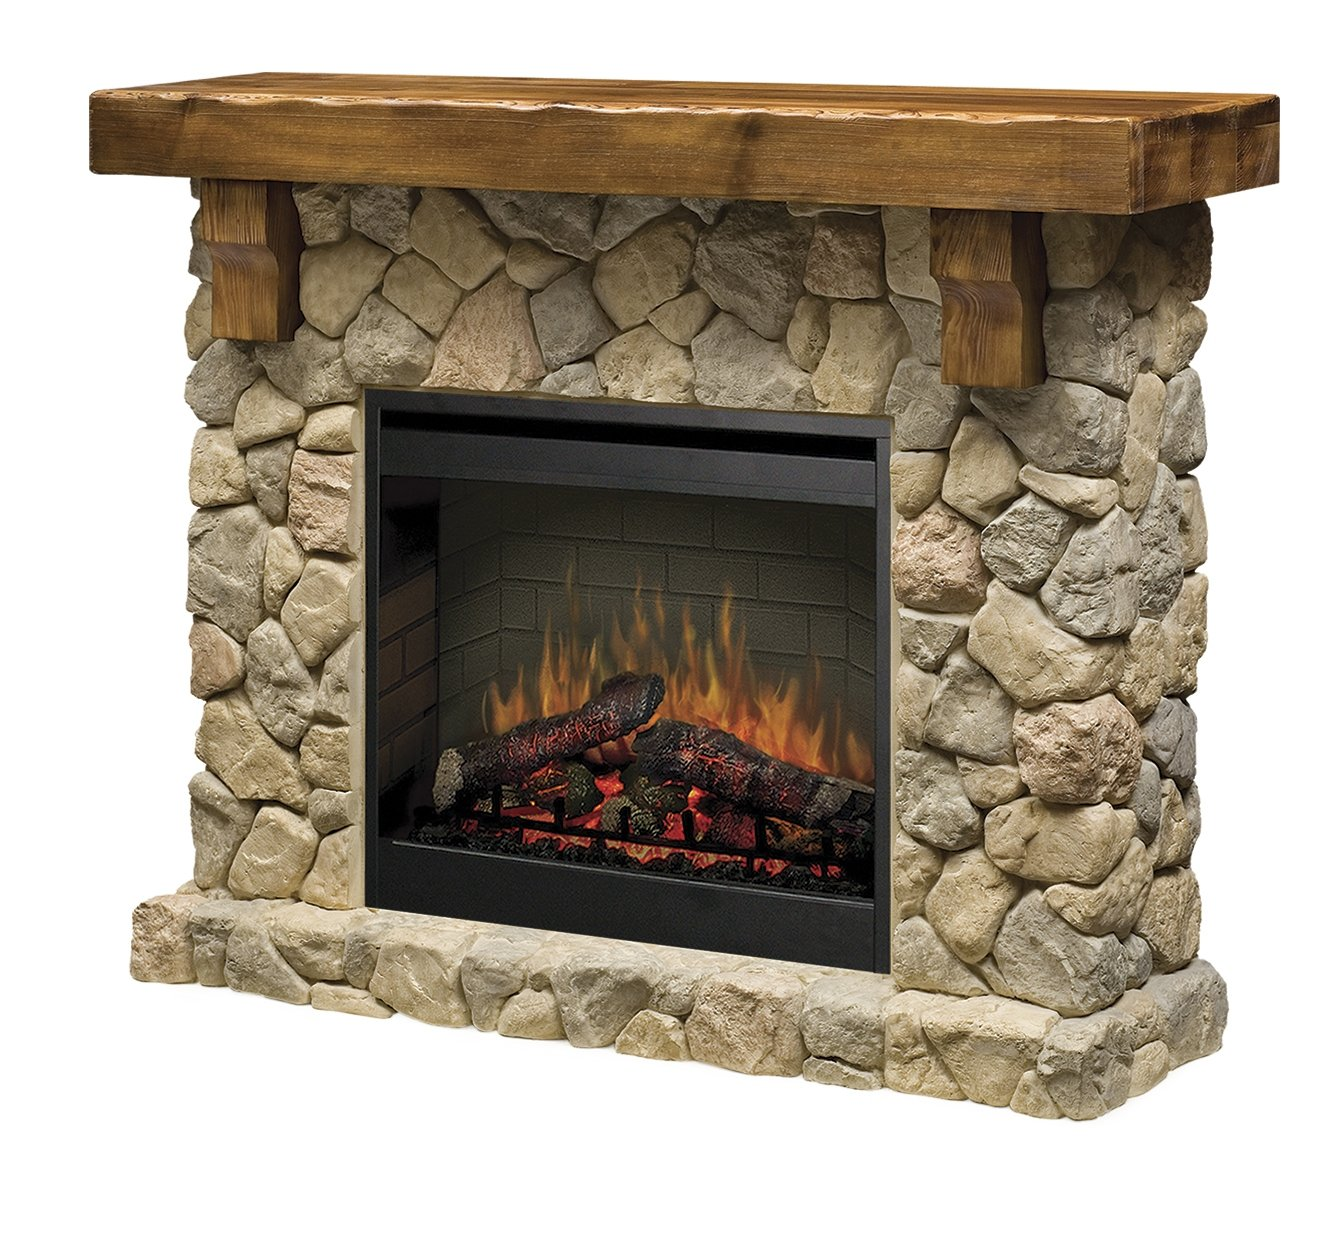 Dimplex Fieldstone Look, Pine and Electric Fireplace Mantel